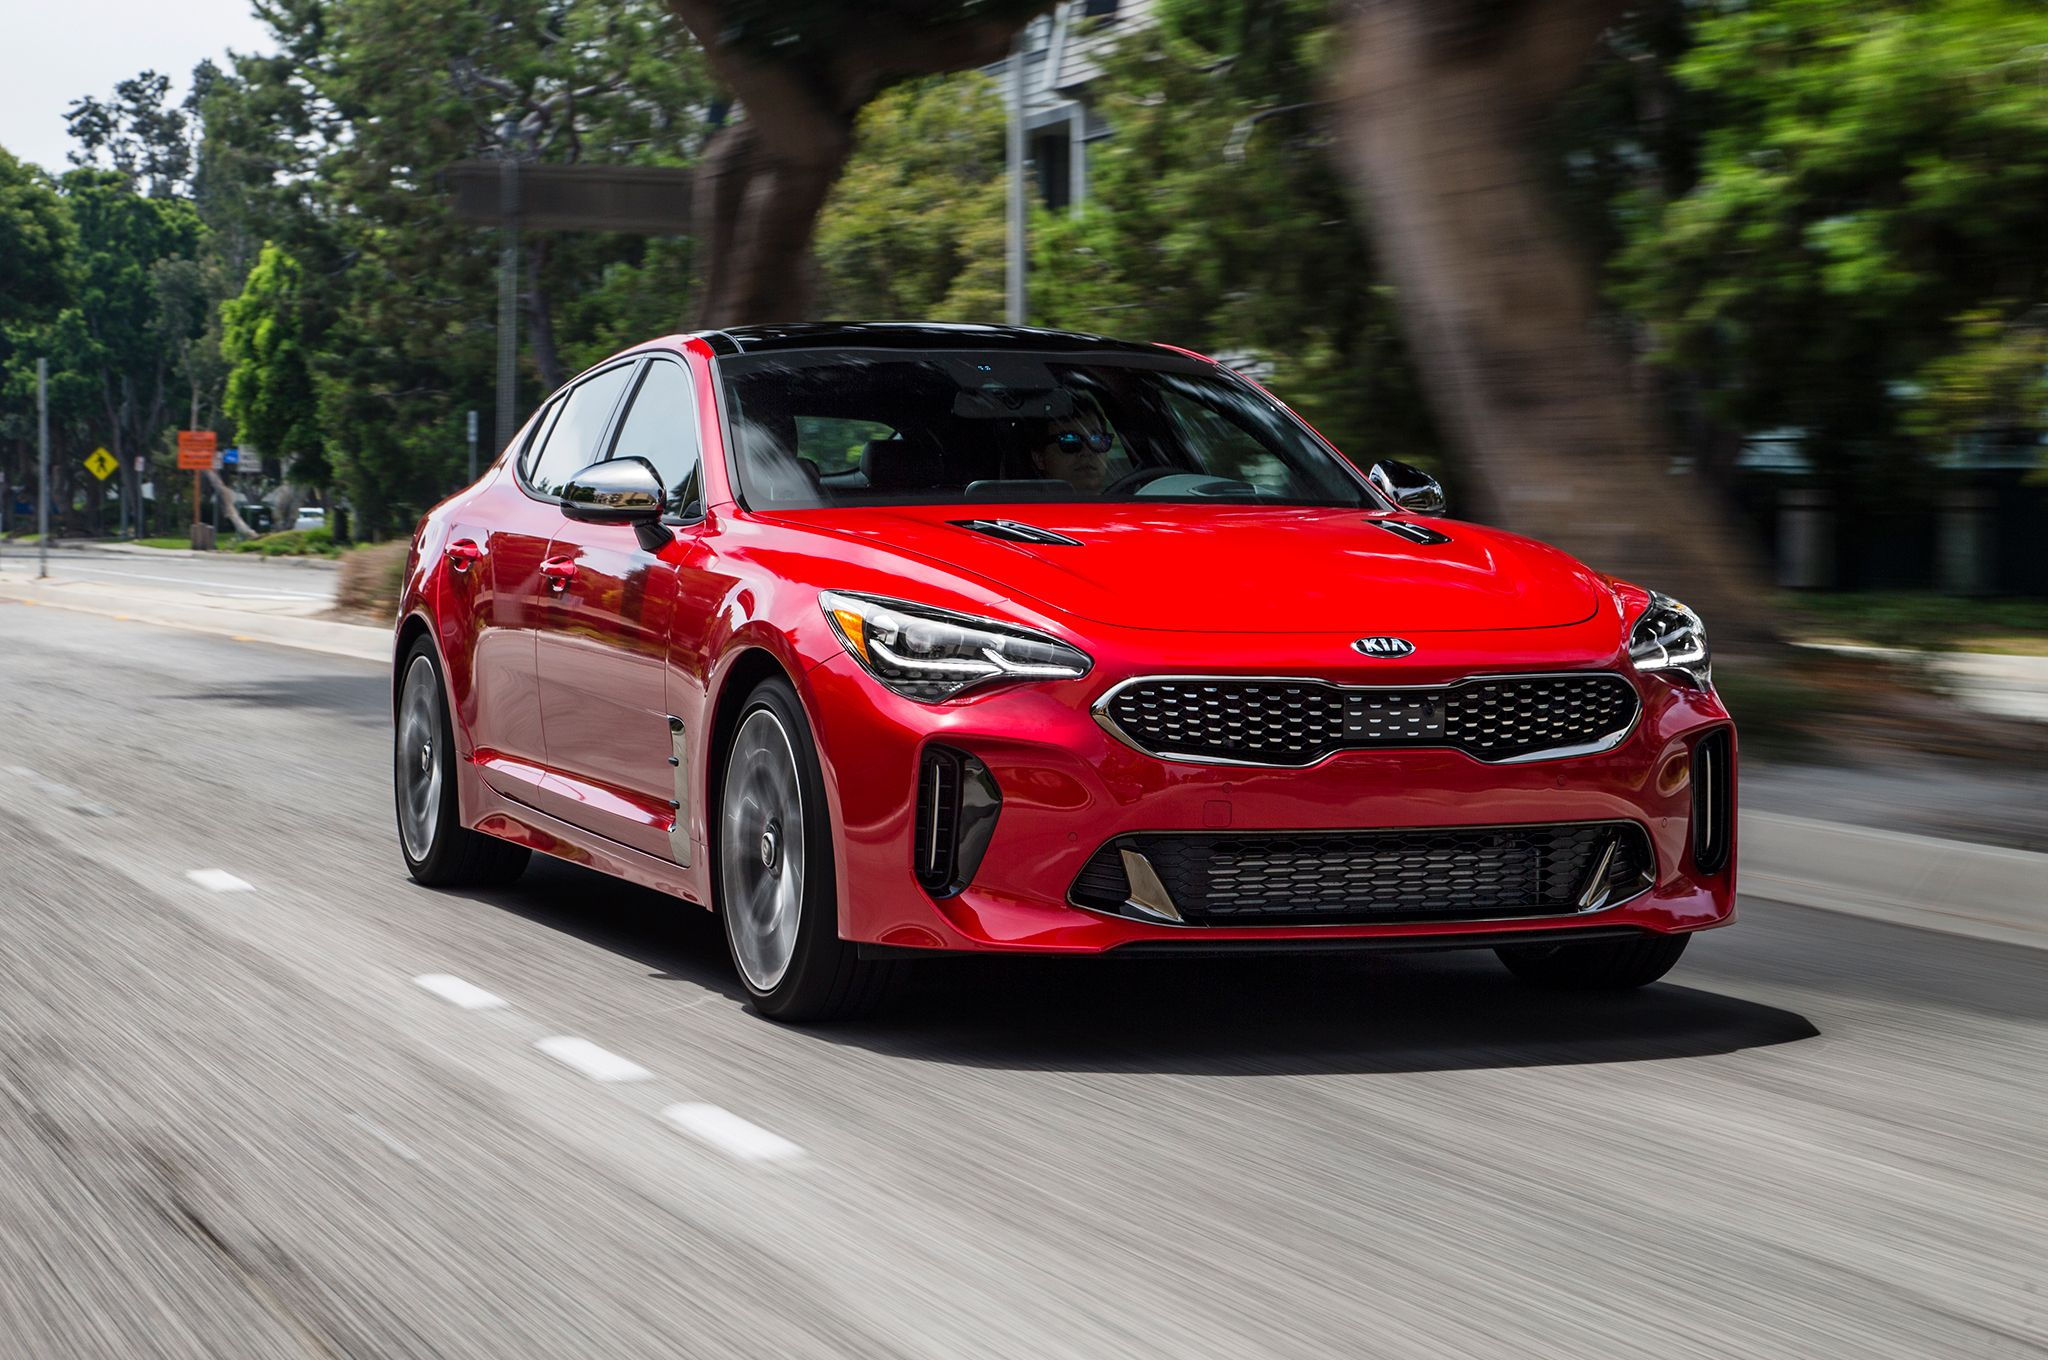 News 2018 Kia Stinger Gt Undercuts Audi S5 Sportback By Nearly 15 000 With A Base Price Of 39 895 Cars Superca In 2020 Kia Stinger Latest Cars Audi S5 Sportback